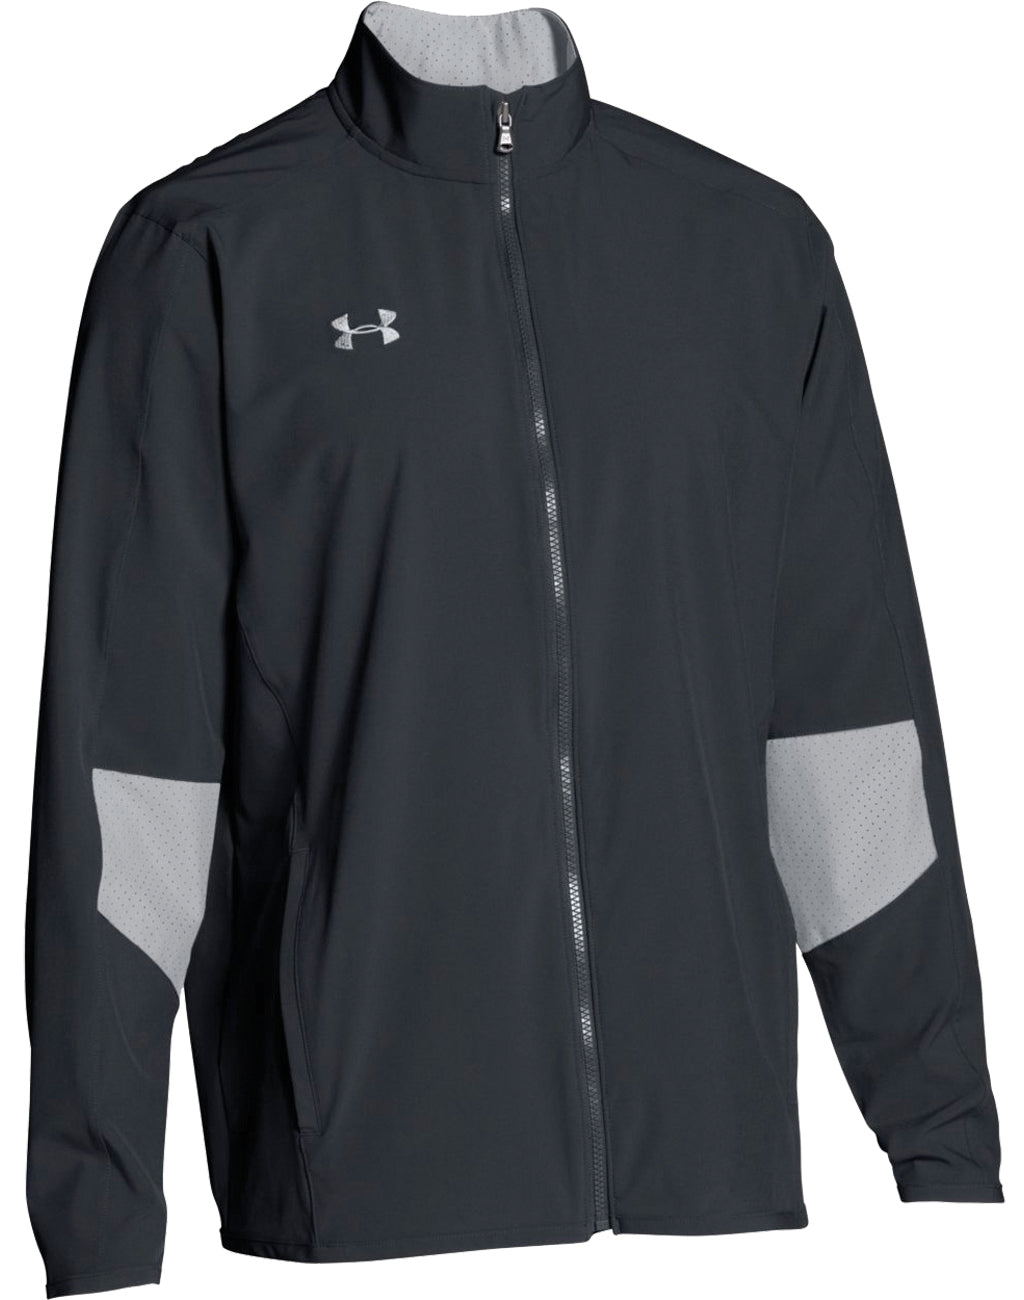 Men's Under Armour Squad Warm Up Jacket